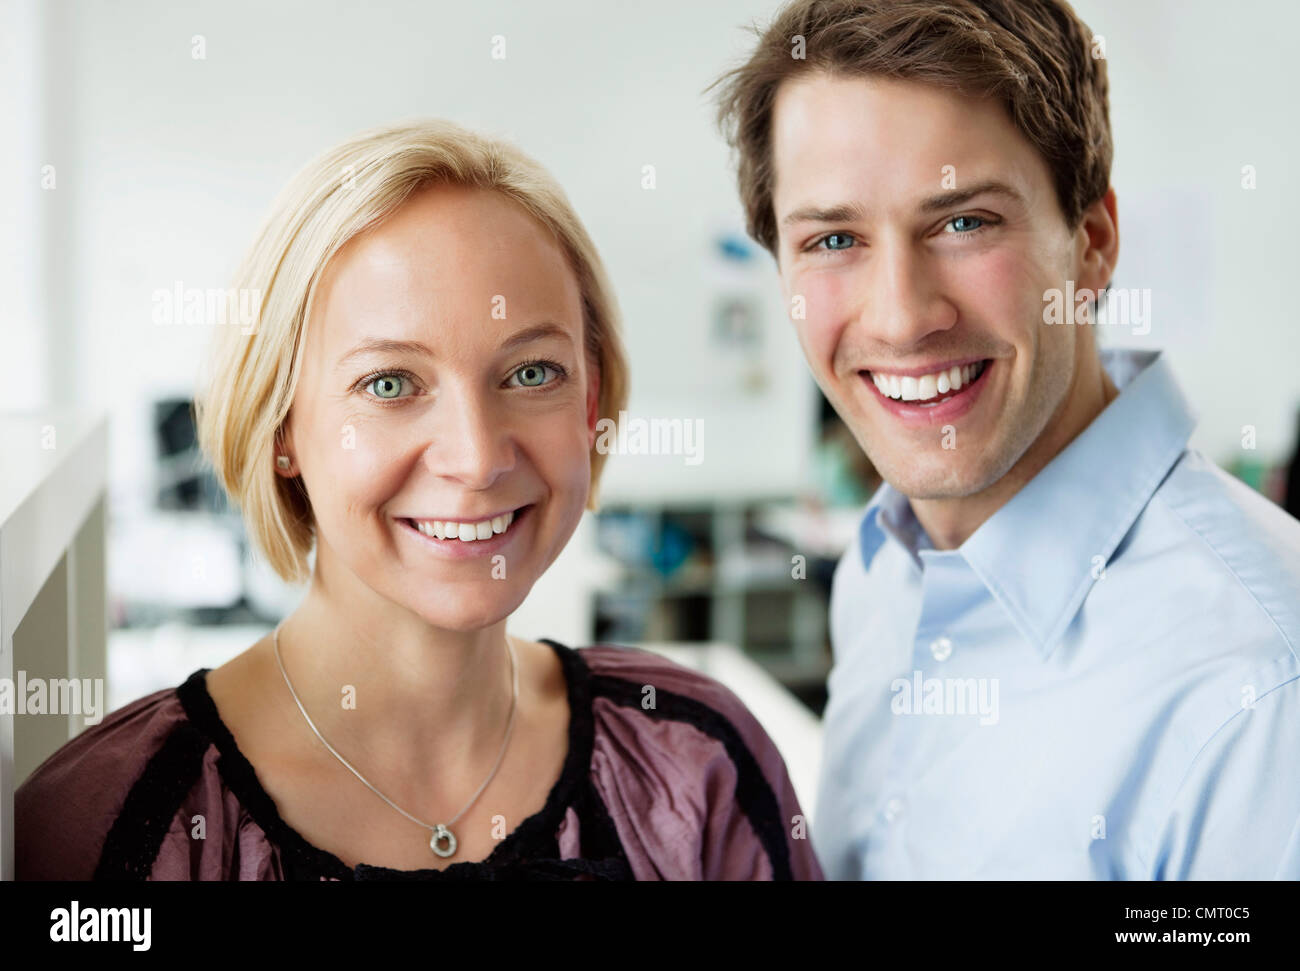 Portrait of smiling coworkers - Stock Image